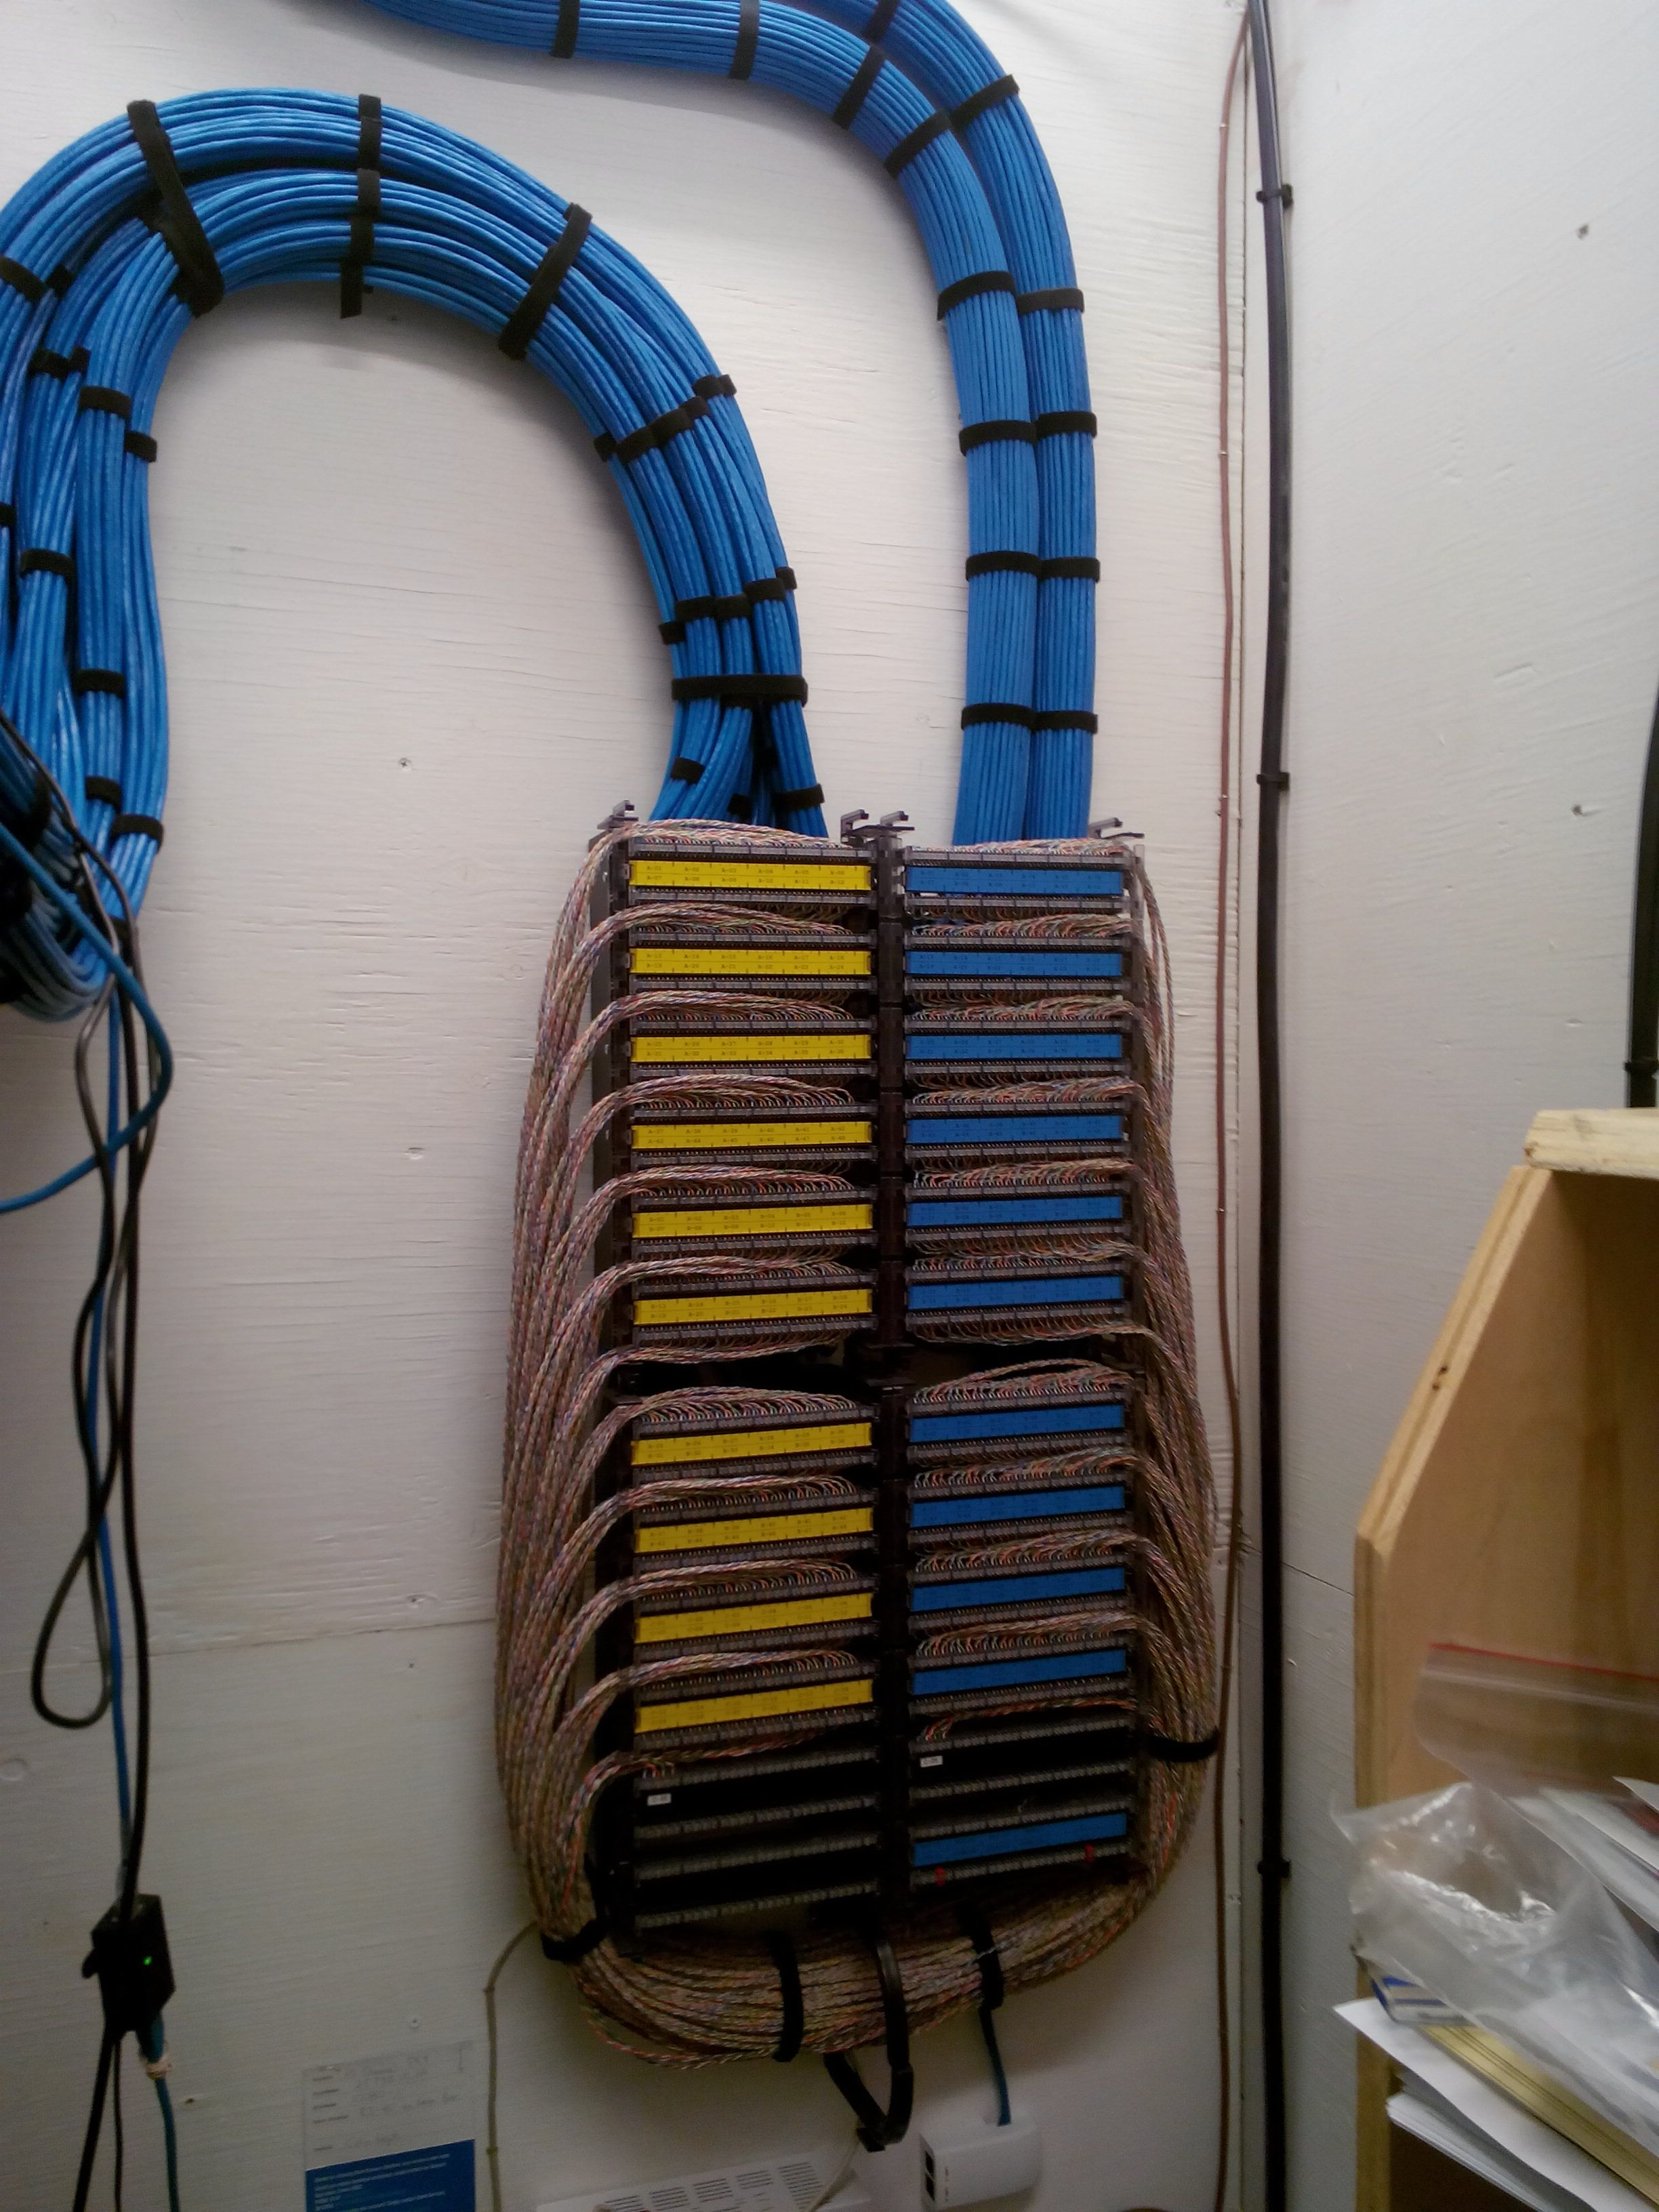 Terminating A Ton Of Network Cabling Incredibly Satisfying To See Structured Cabling Cable Management Cable